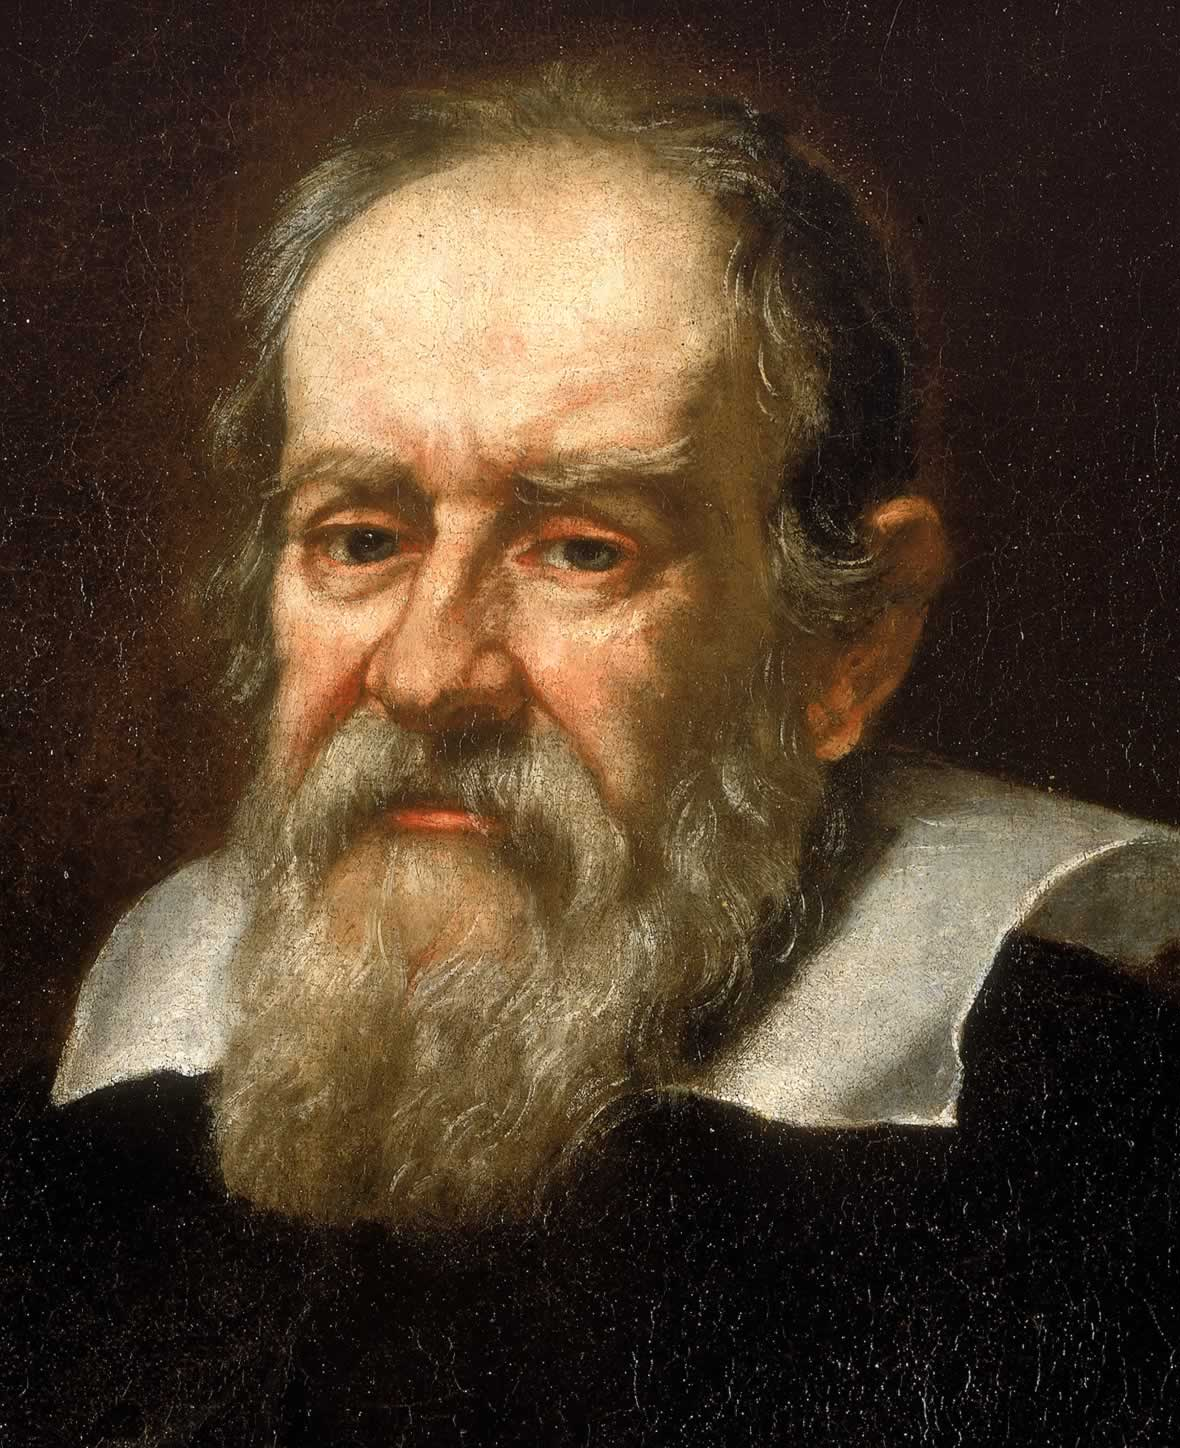 Portrait of Galileo Galilei by Justus Sustermans painted in 1636.